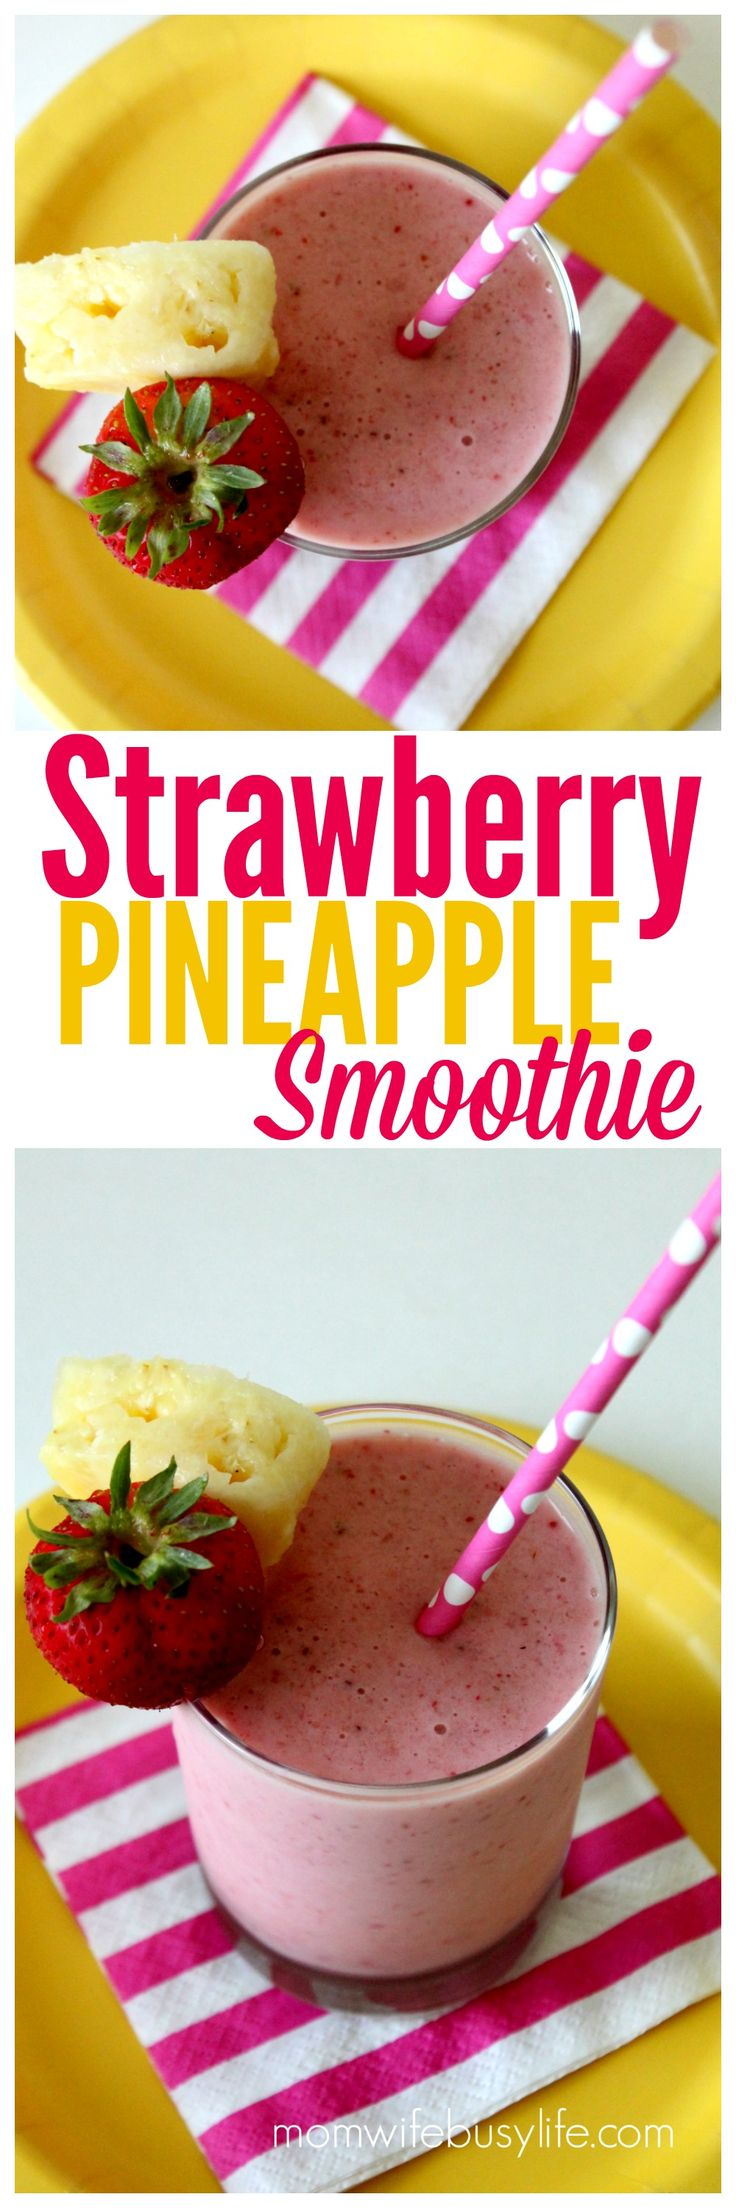 Strawberry Pineapple Smoothie Recipe | Fresh Fruit Smoothie Recipes | Healthy Smoothies